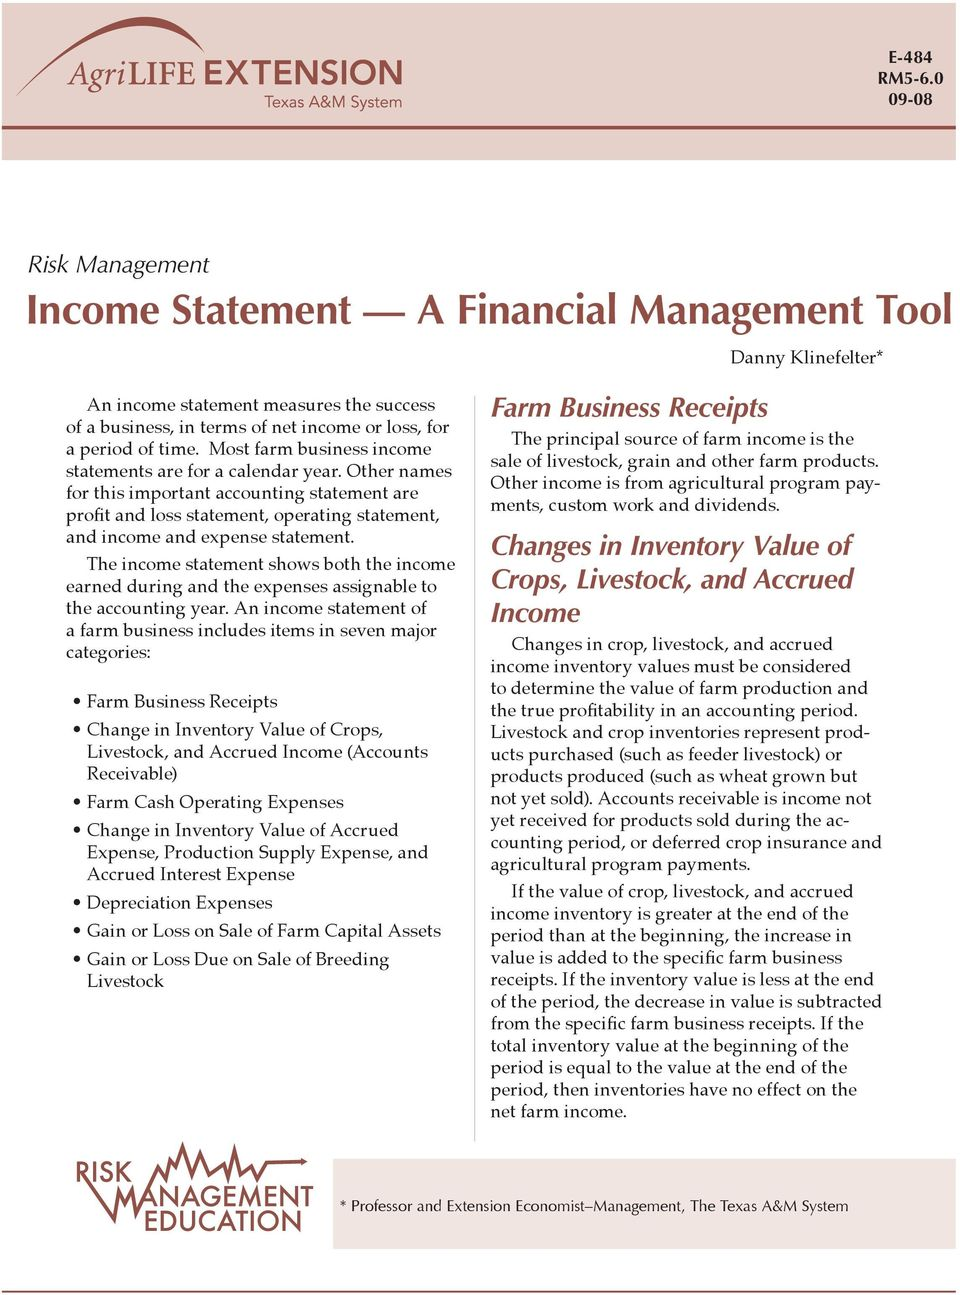 Most farm business income statements are for a calendar year. Other names for this important accounting statement are profit and loss statement, operating statement, and income and expense statement.